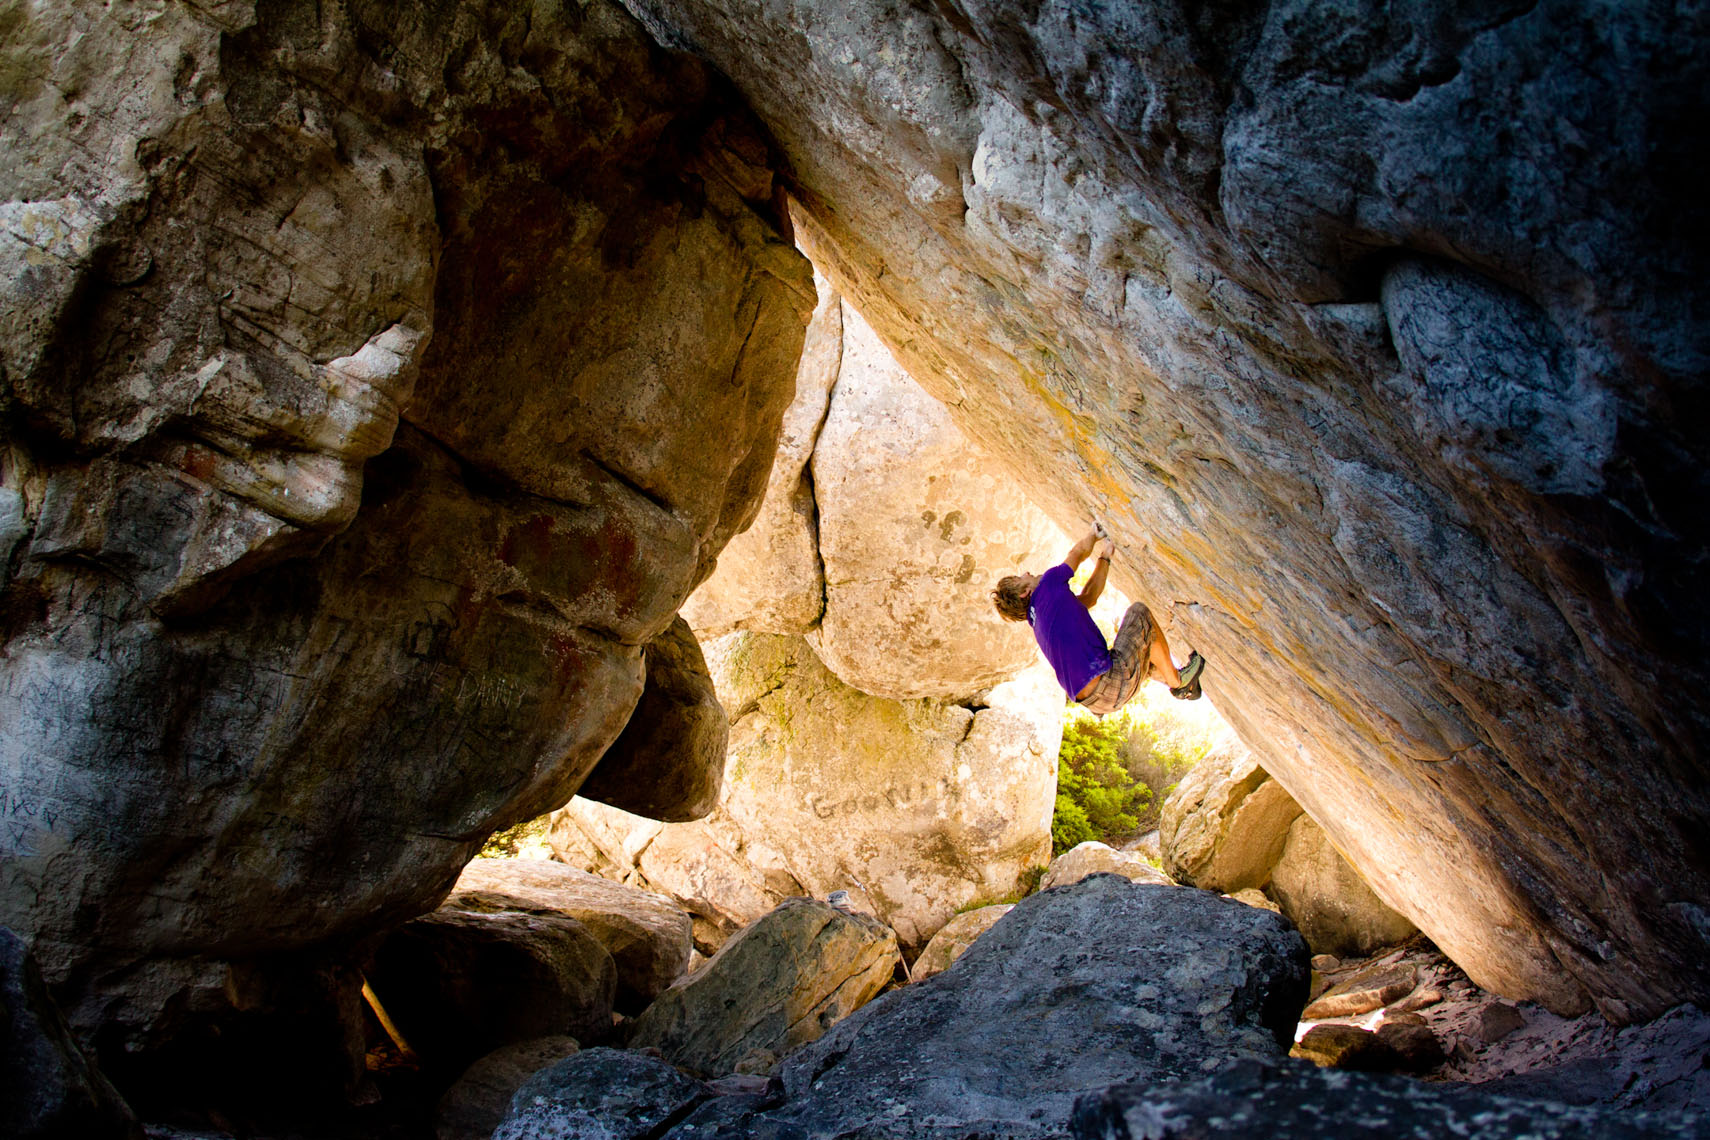 Marijus Smigelskies rock climbing near Cape Town South Africa photographed by Forest Woodward